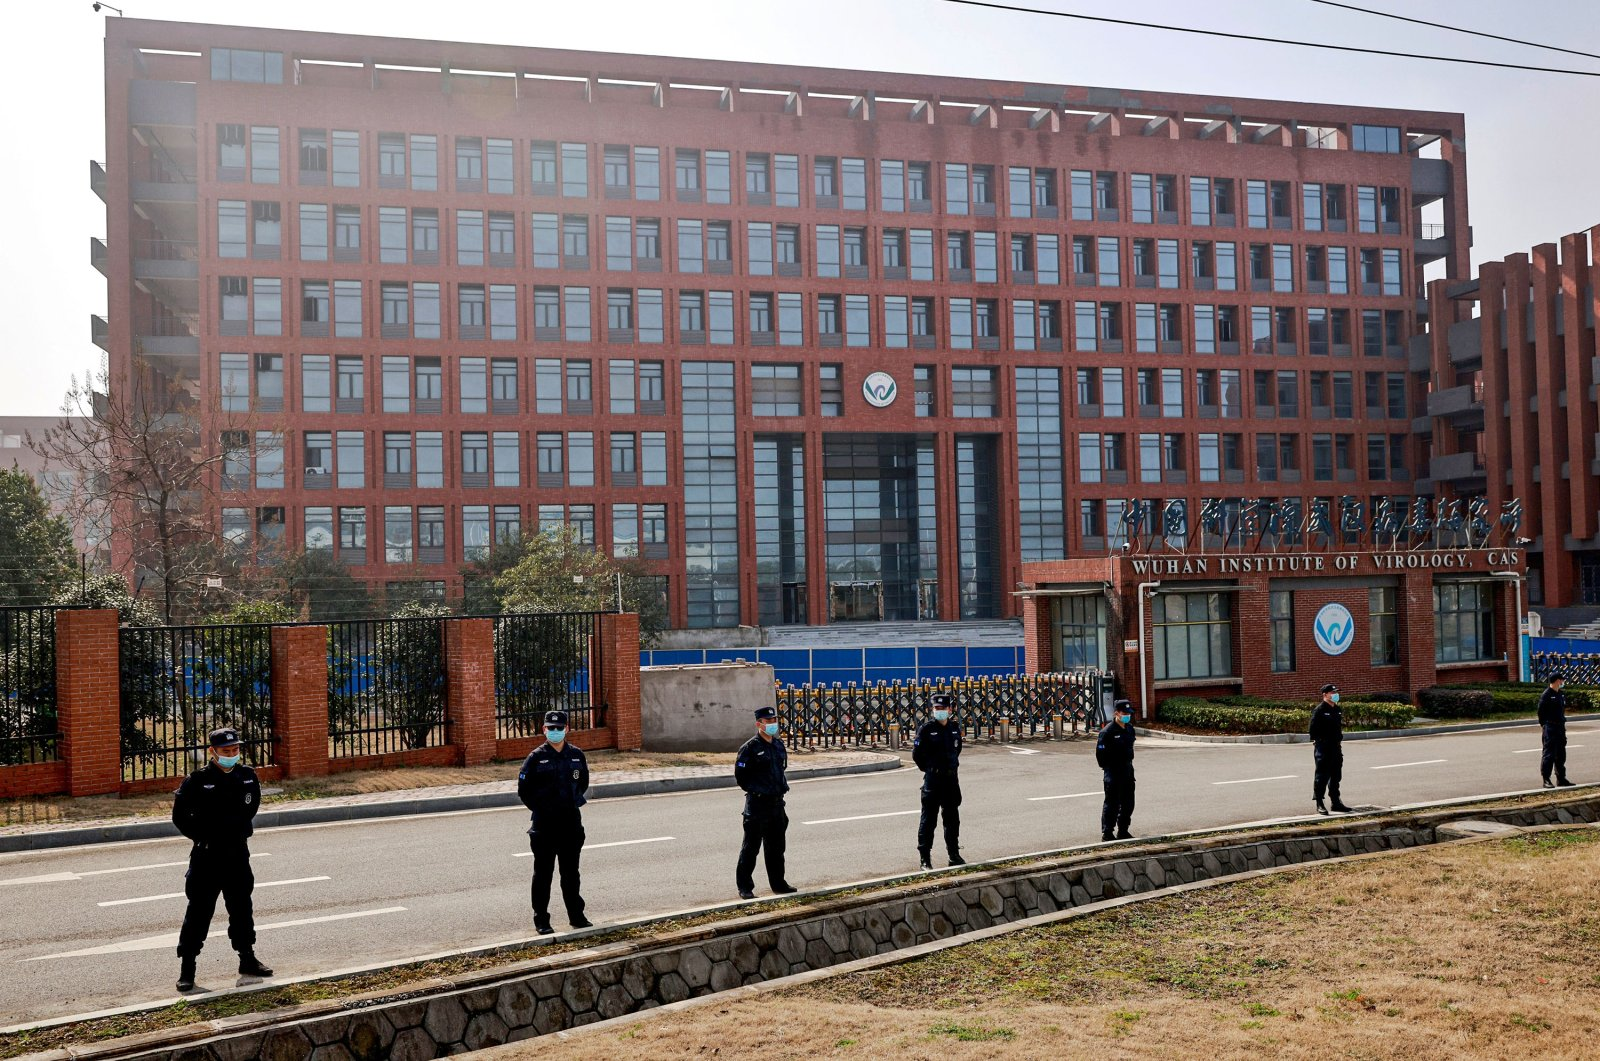 Security personnel keep watch outside the Wuhan Institute of Virology during the visit by the World Health Organization (WHO) team tasked with investigating the origins of the coronavirus, inWuhan, Hubei province, China, Feb. 3, 2021. (Reuters Photo)